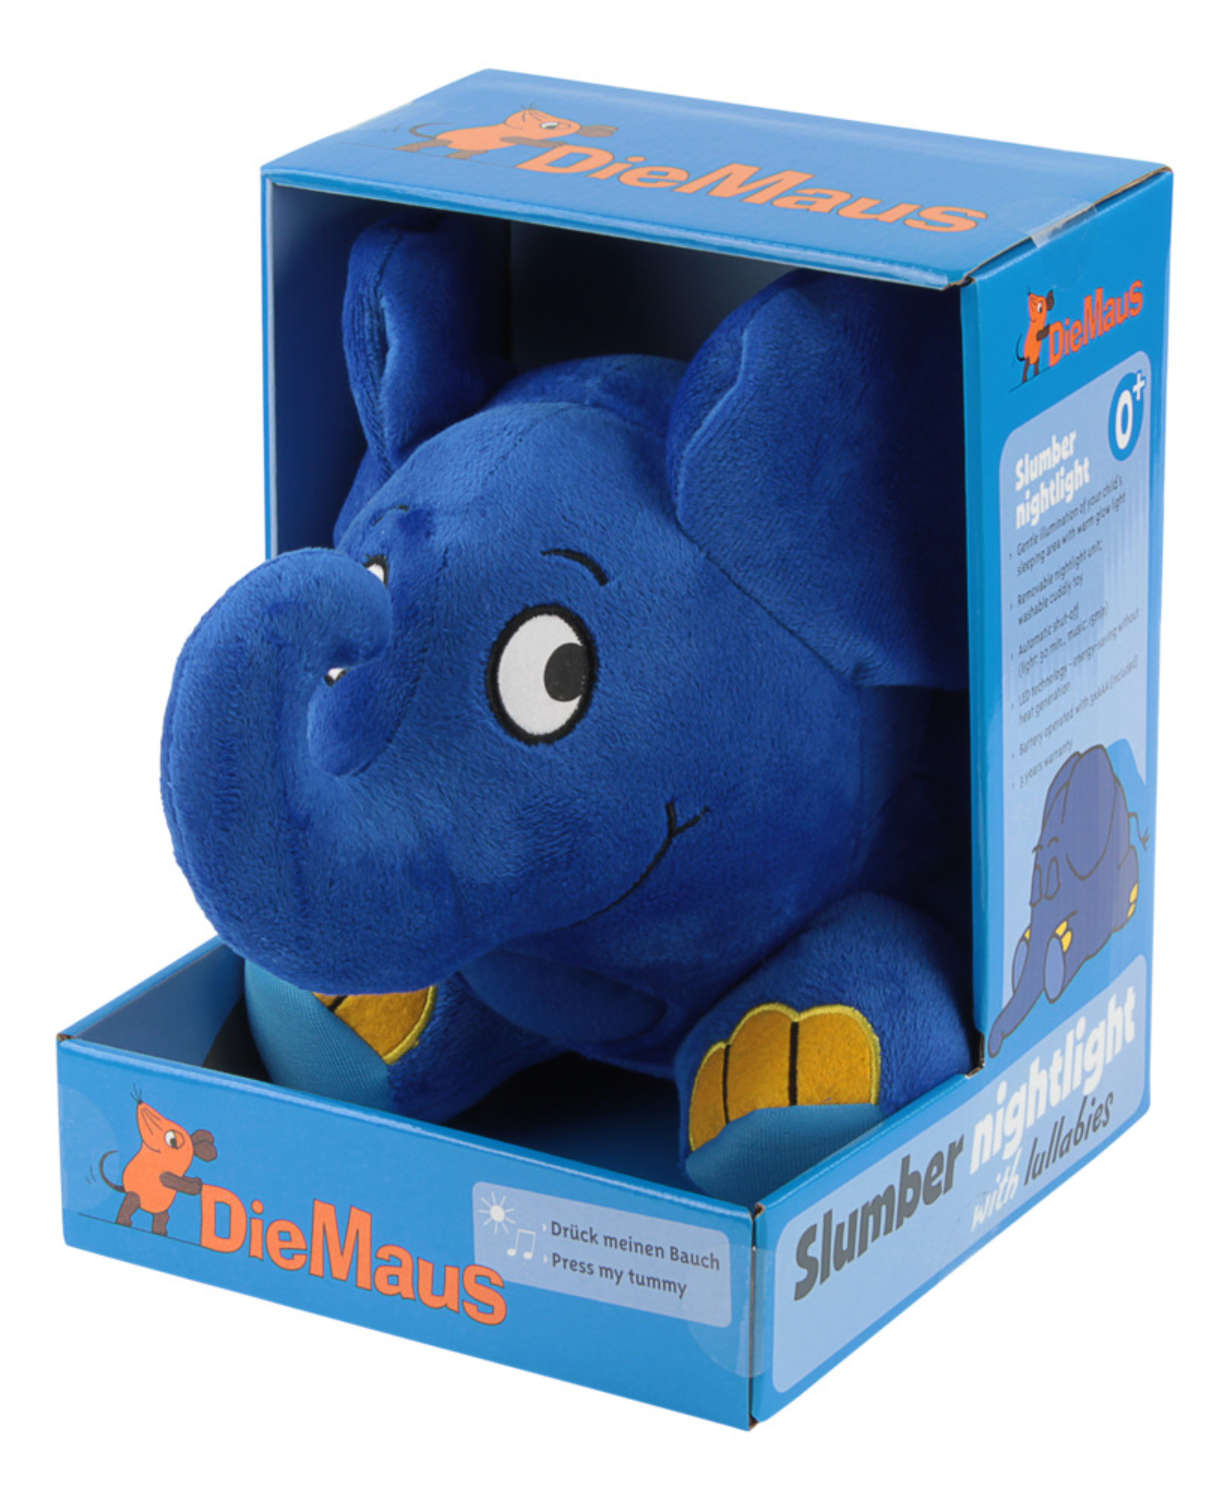 1800-0014_CP-Slumber Nightlight-Die-Maus-Elefant-cb1